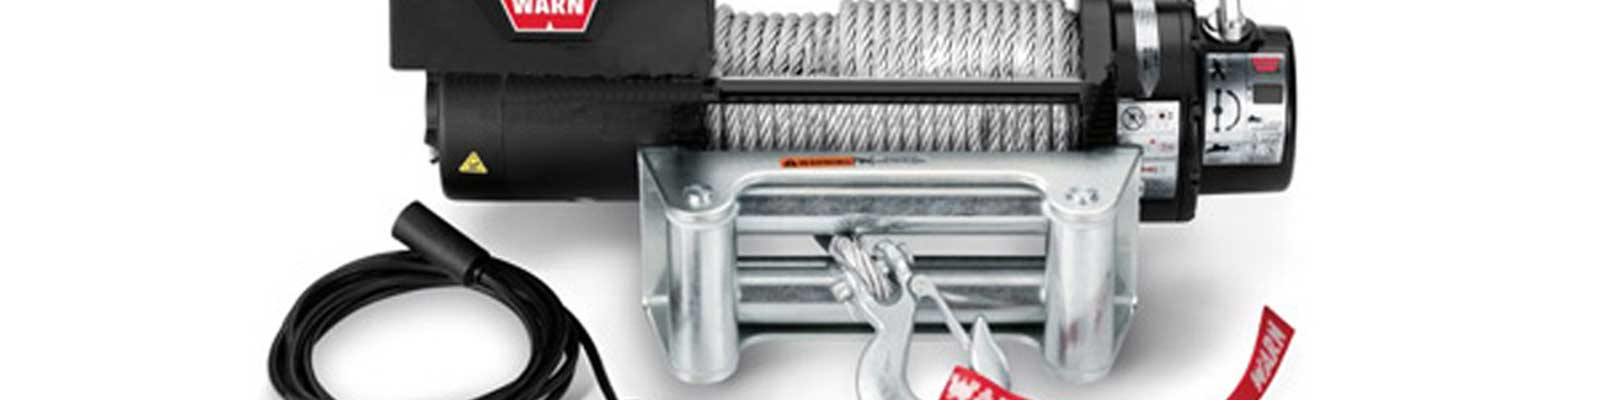 4x4 Winch & Winching Accessories